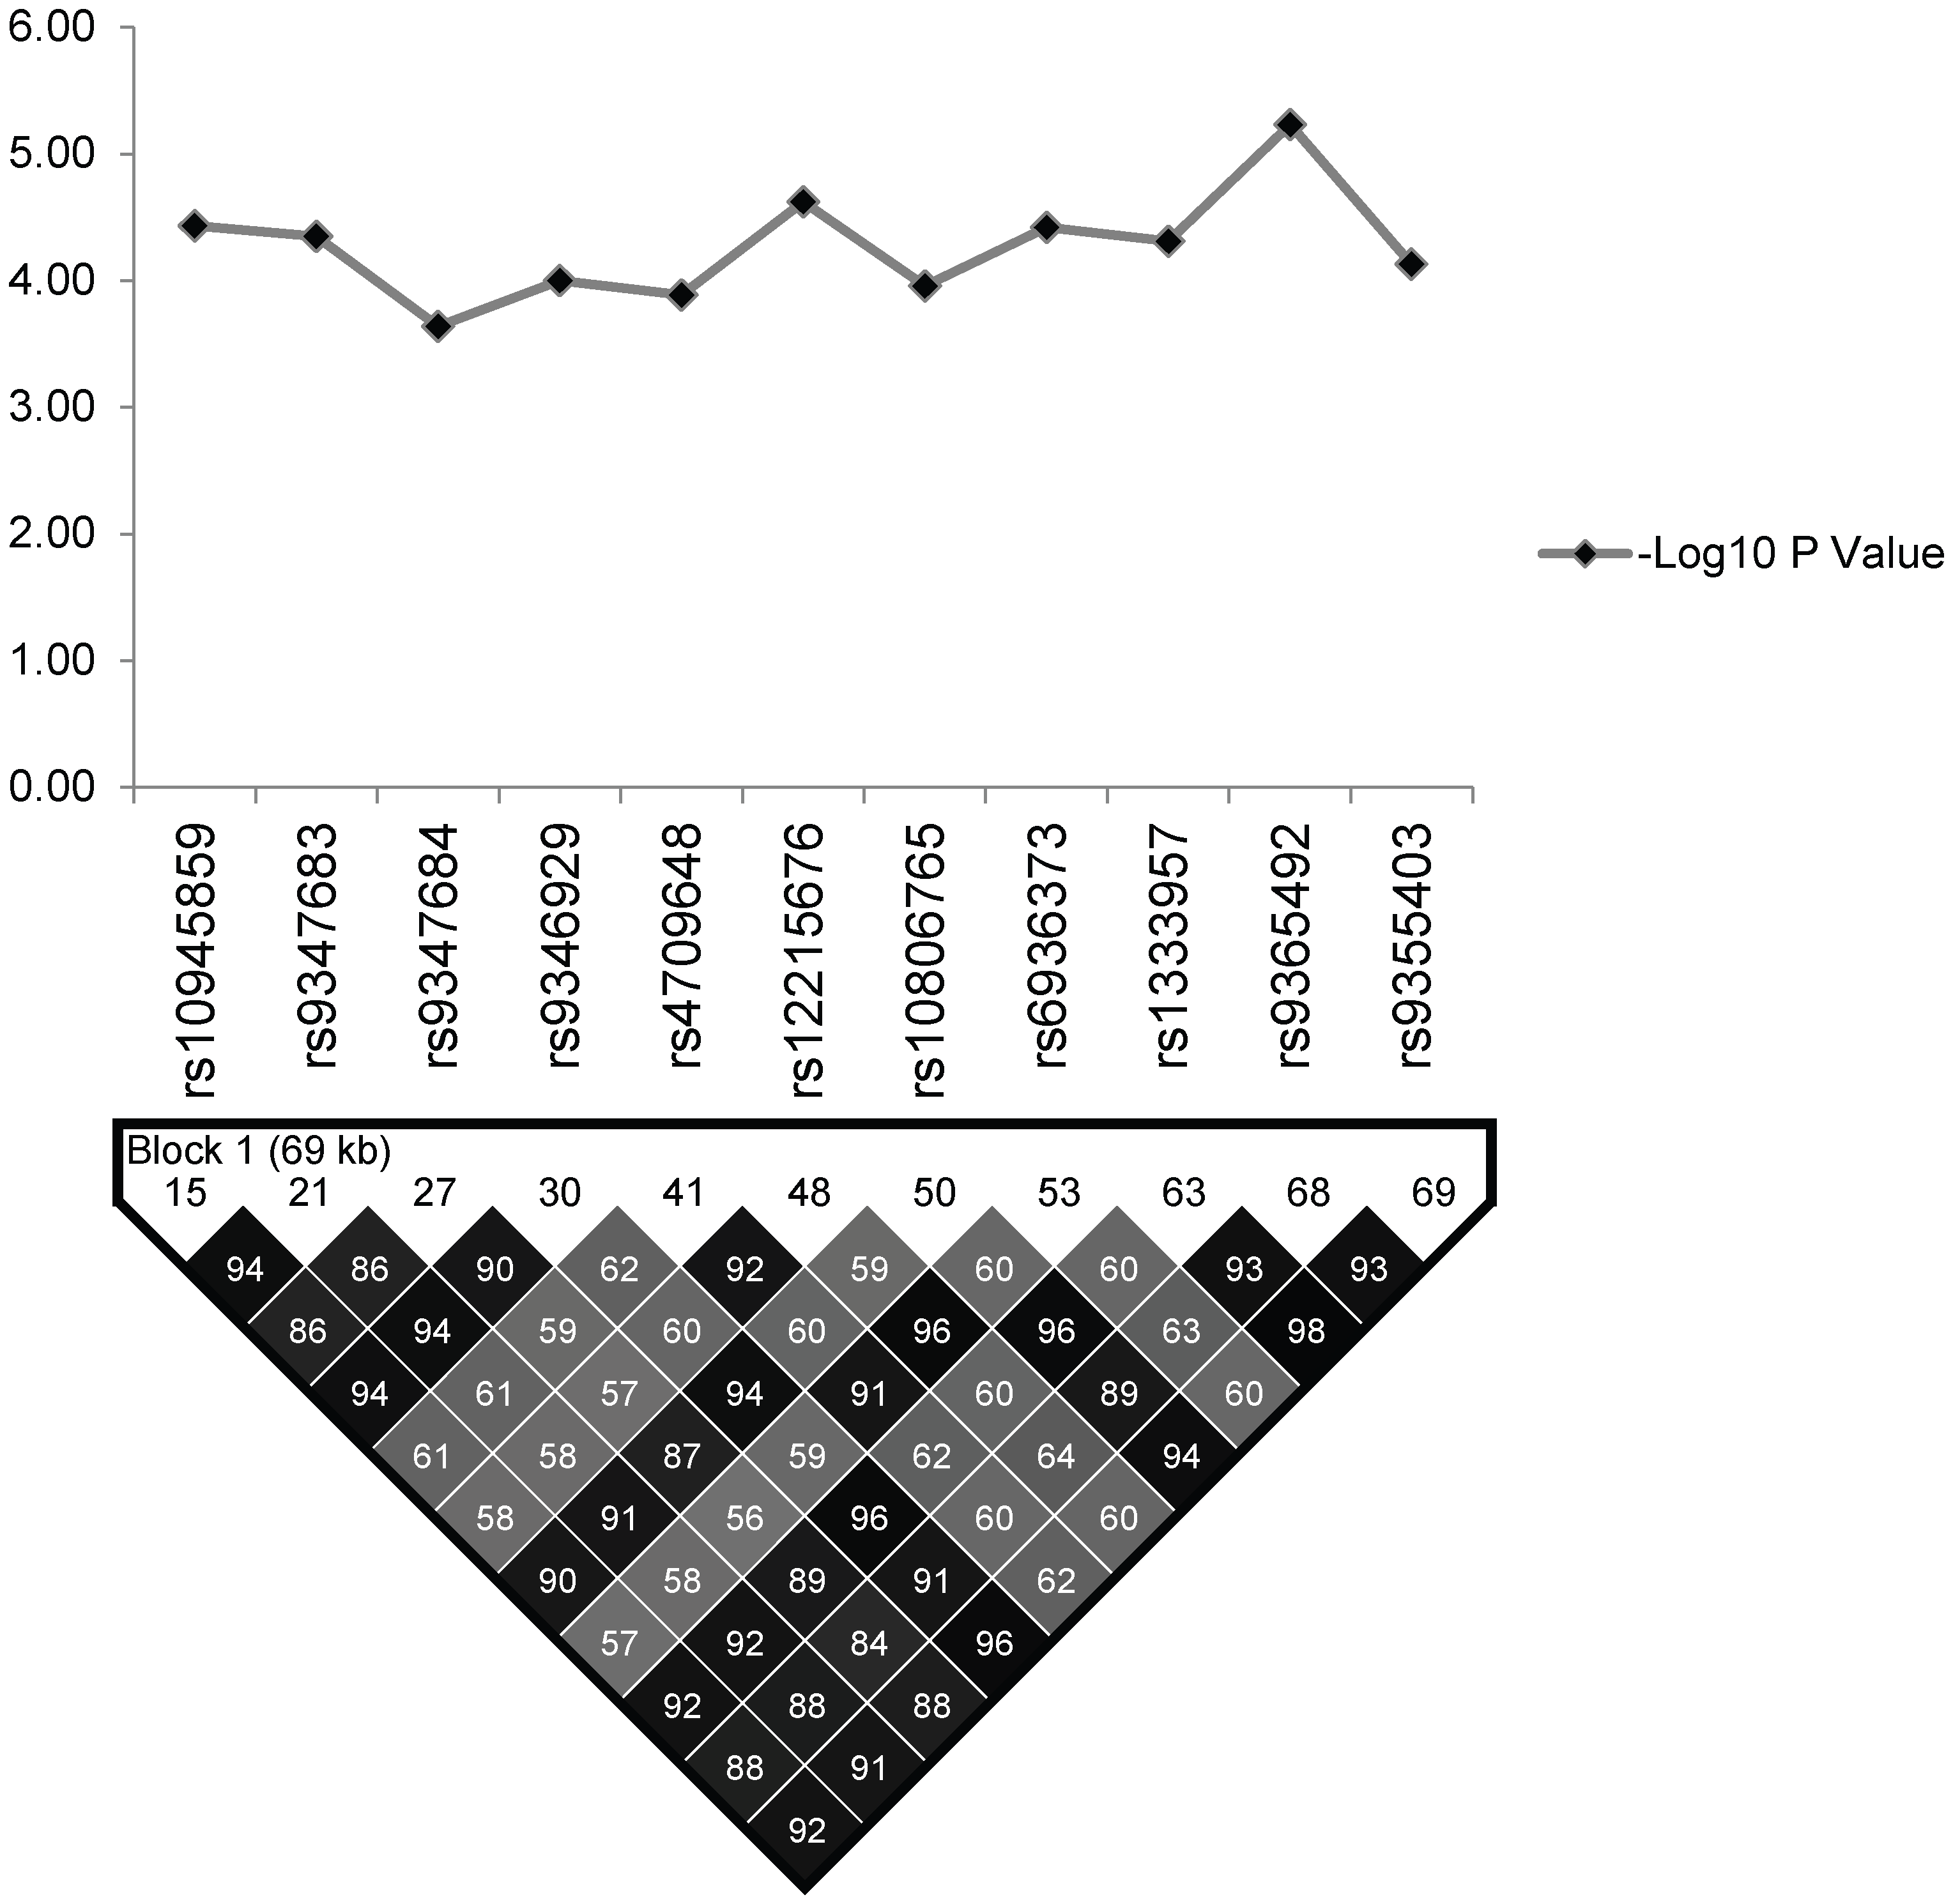 The association statistics of the 11 significant SNPs in the regulatory region of the PARK2 and PACRG genes; presented as negative logarithm of the <i>P</i>-Value and their linkage disequilibrium (LD) plot based on pairwise LD for r<sup>2</sup> cut off value ≥0.80.